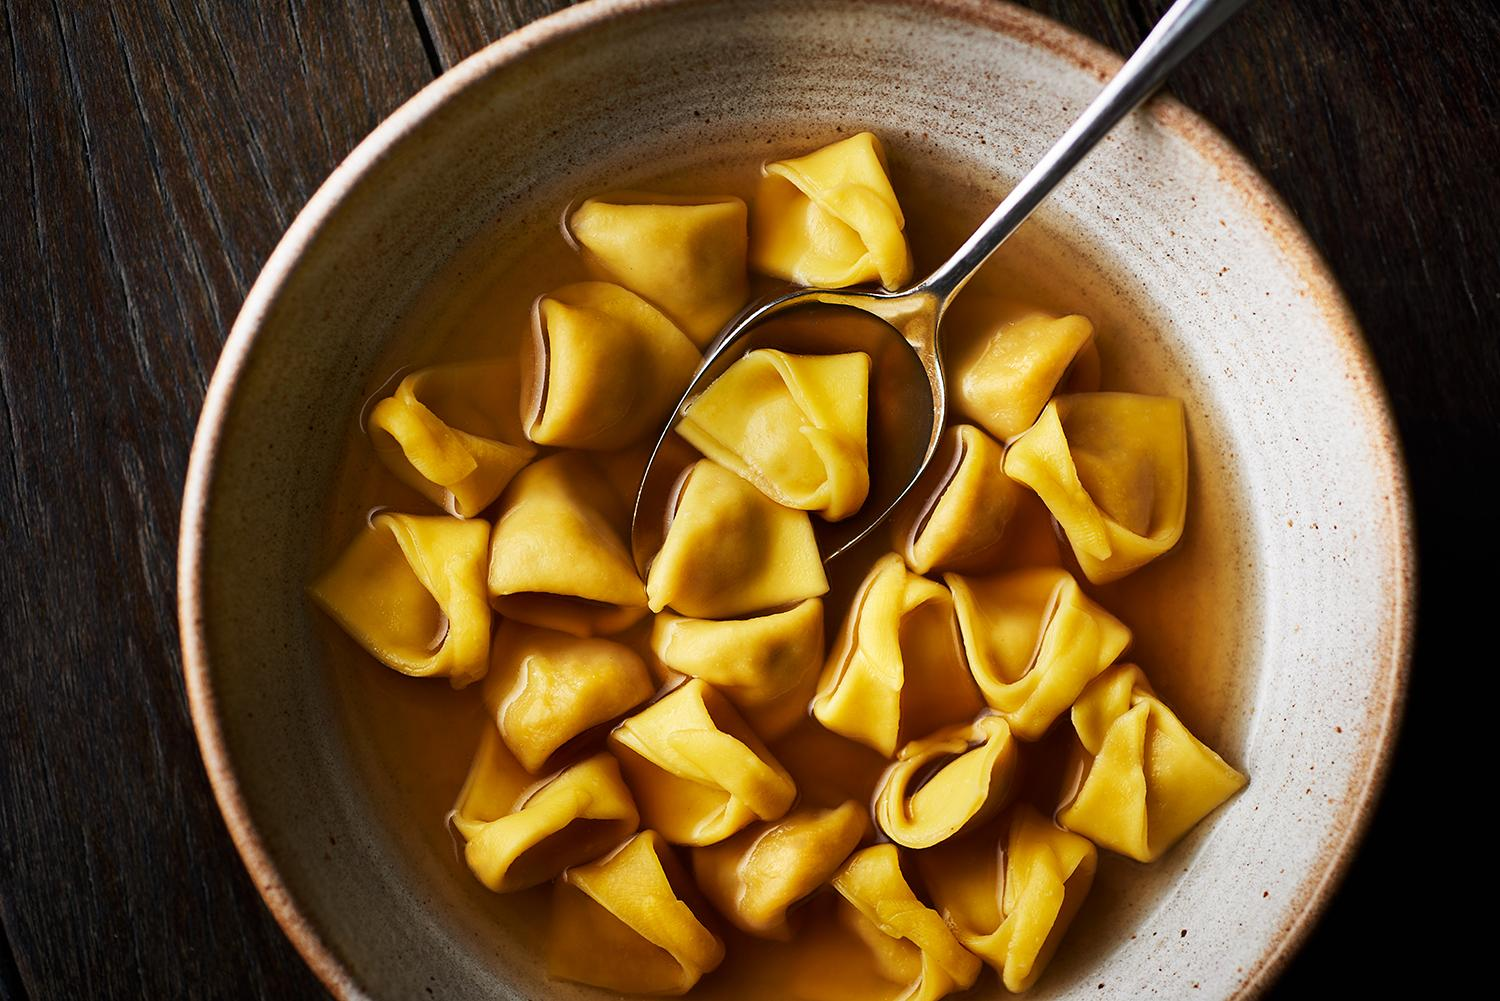 London's best new restaurants include Manteca, which serves these tortellini in brodo